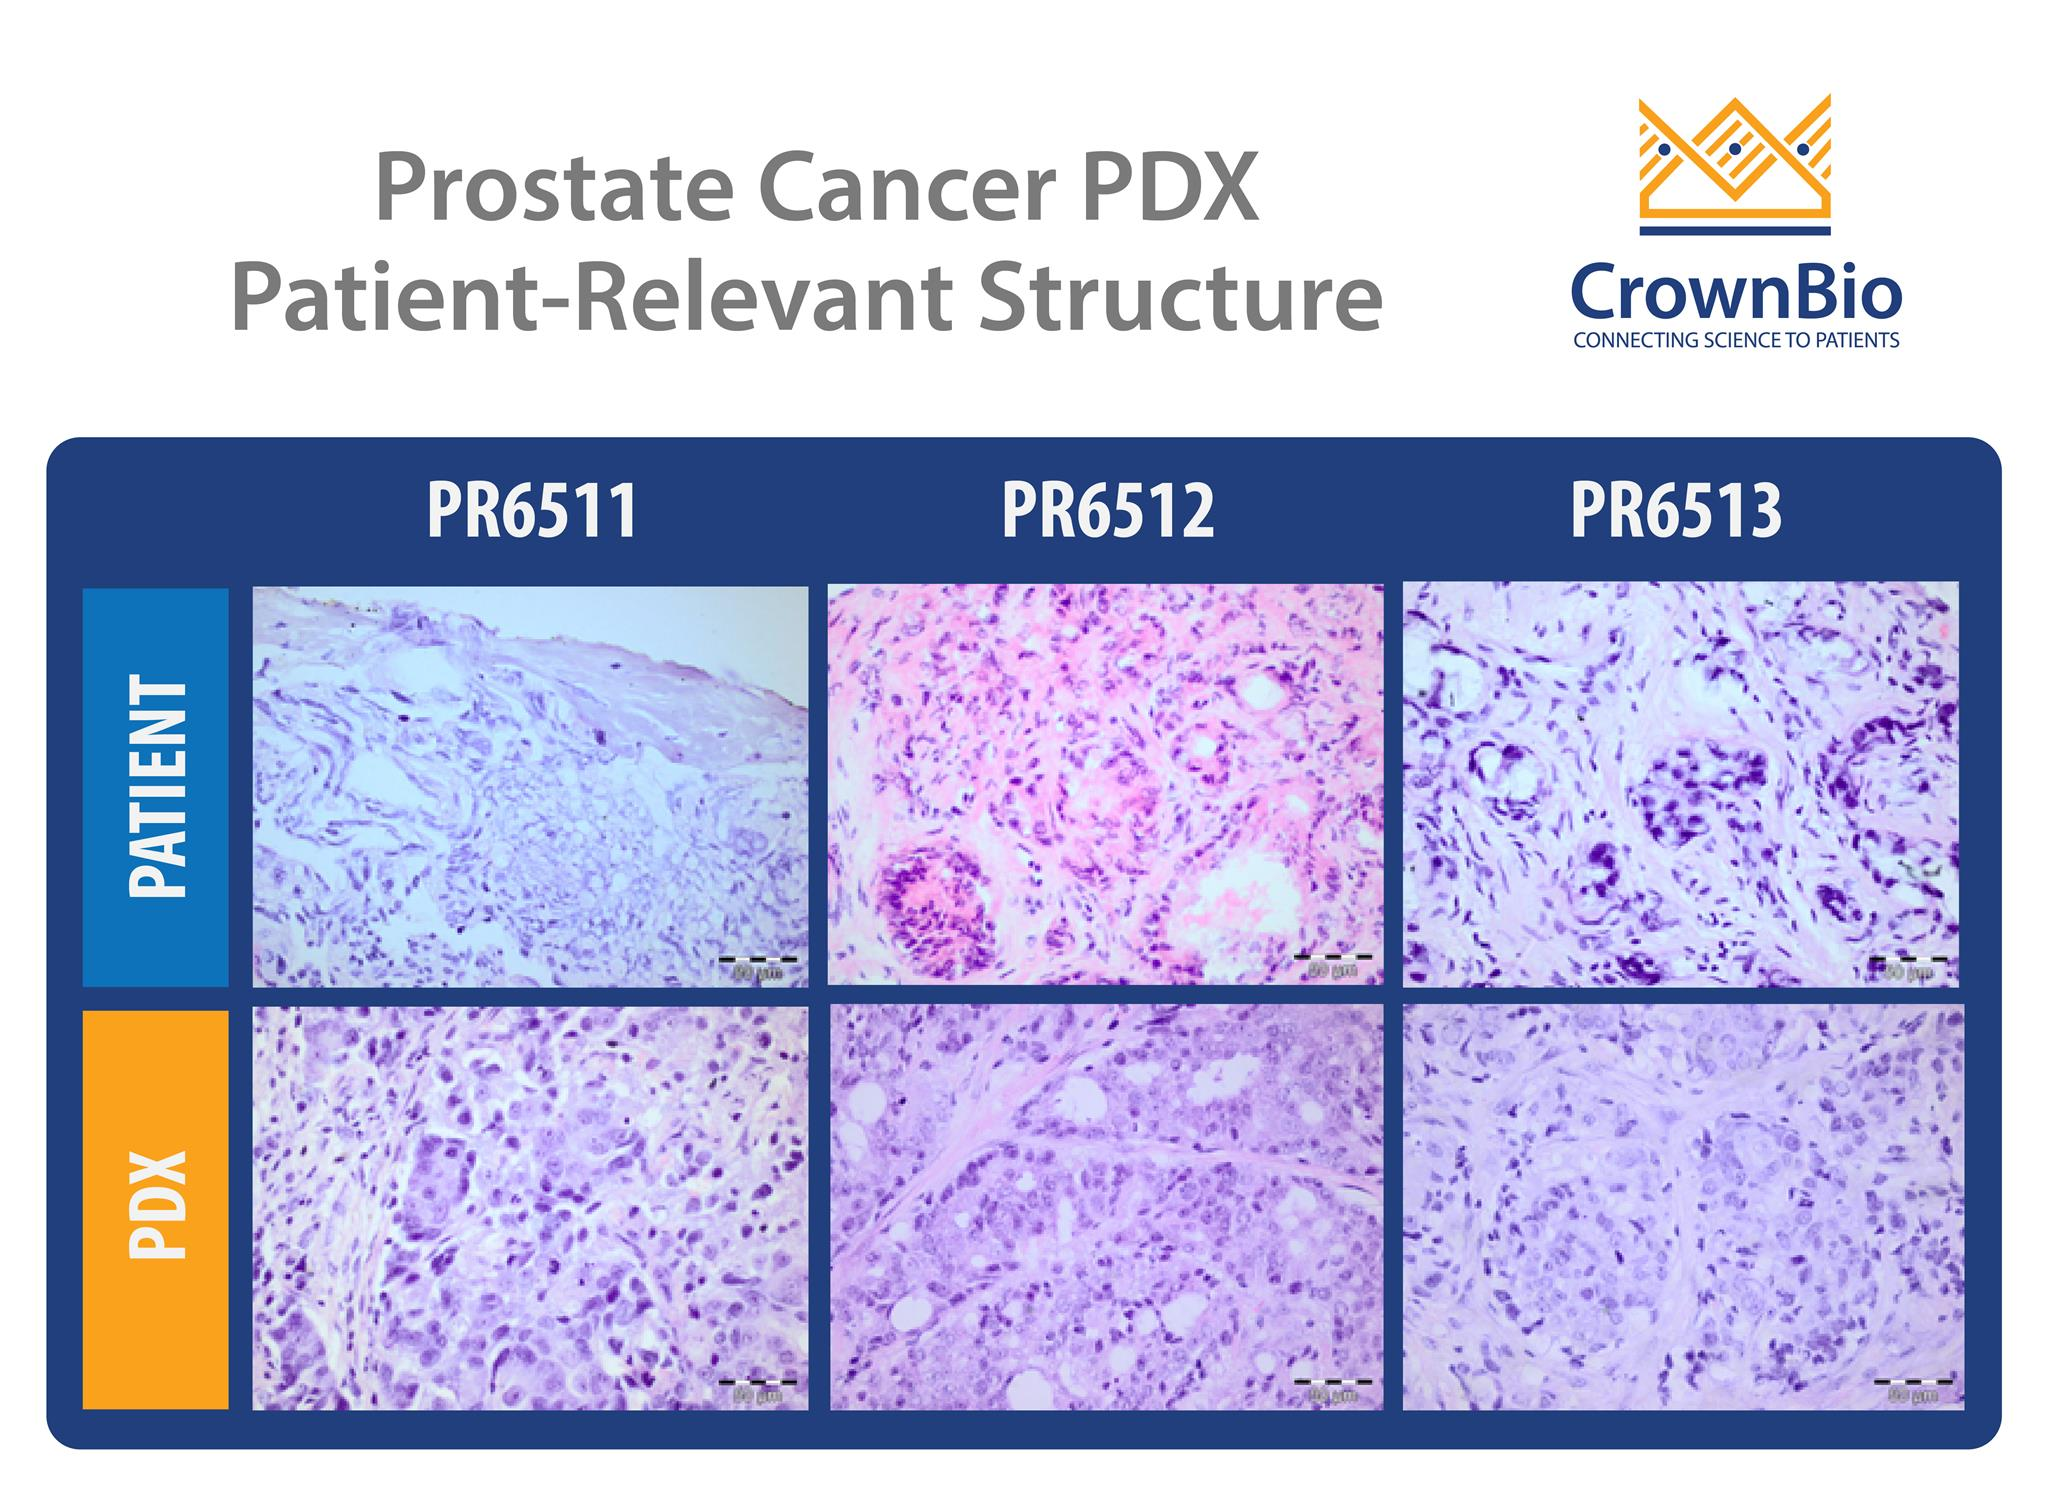 immunohistochemistry images showing that prostate cancer pdx models retain the structure of original patient tumors